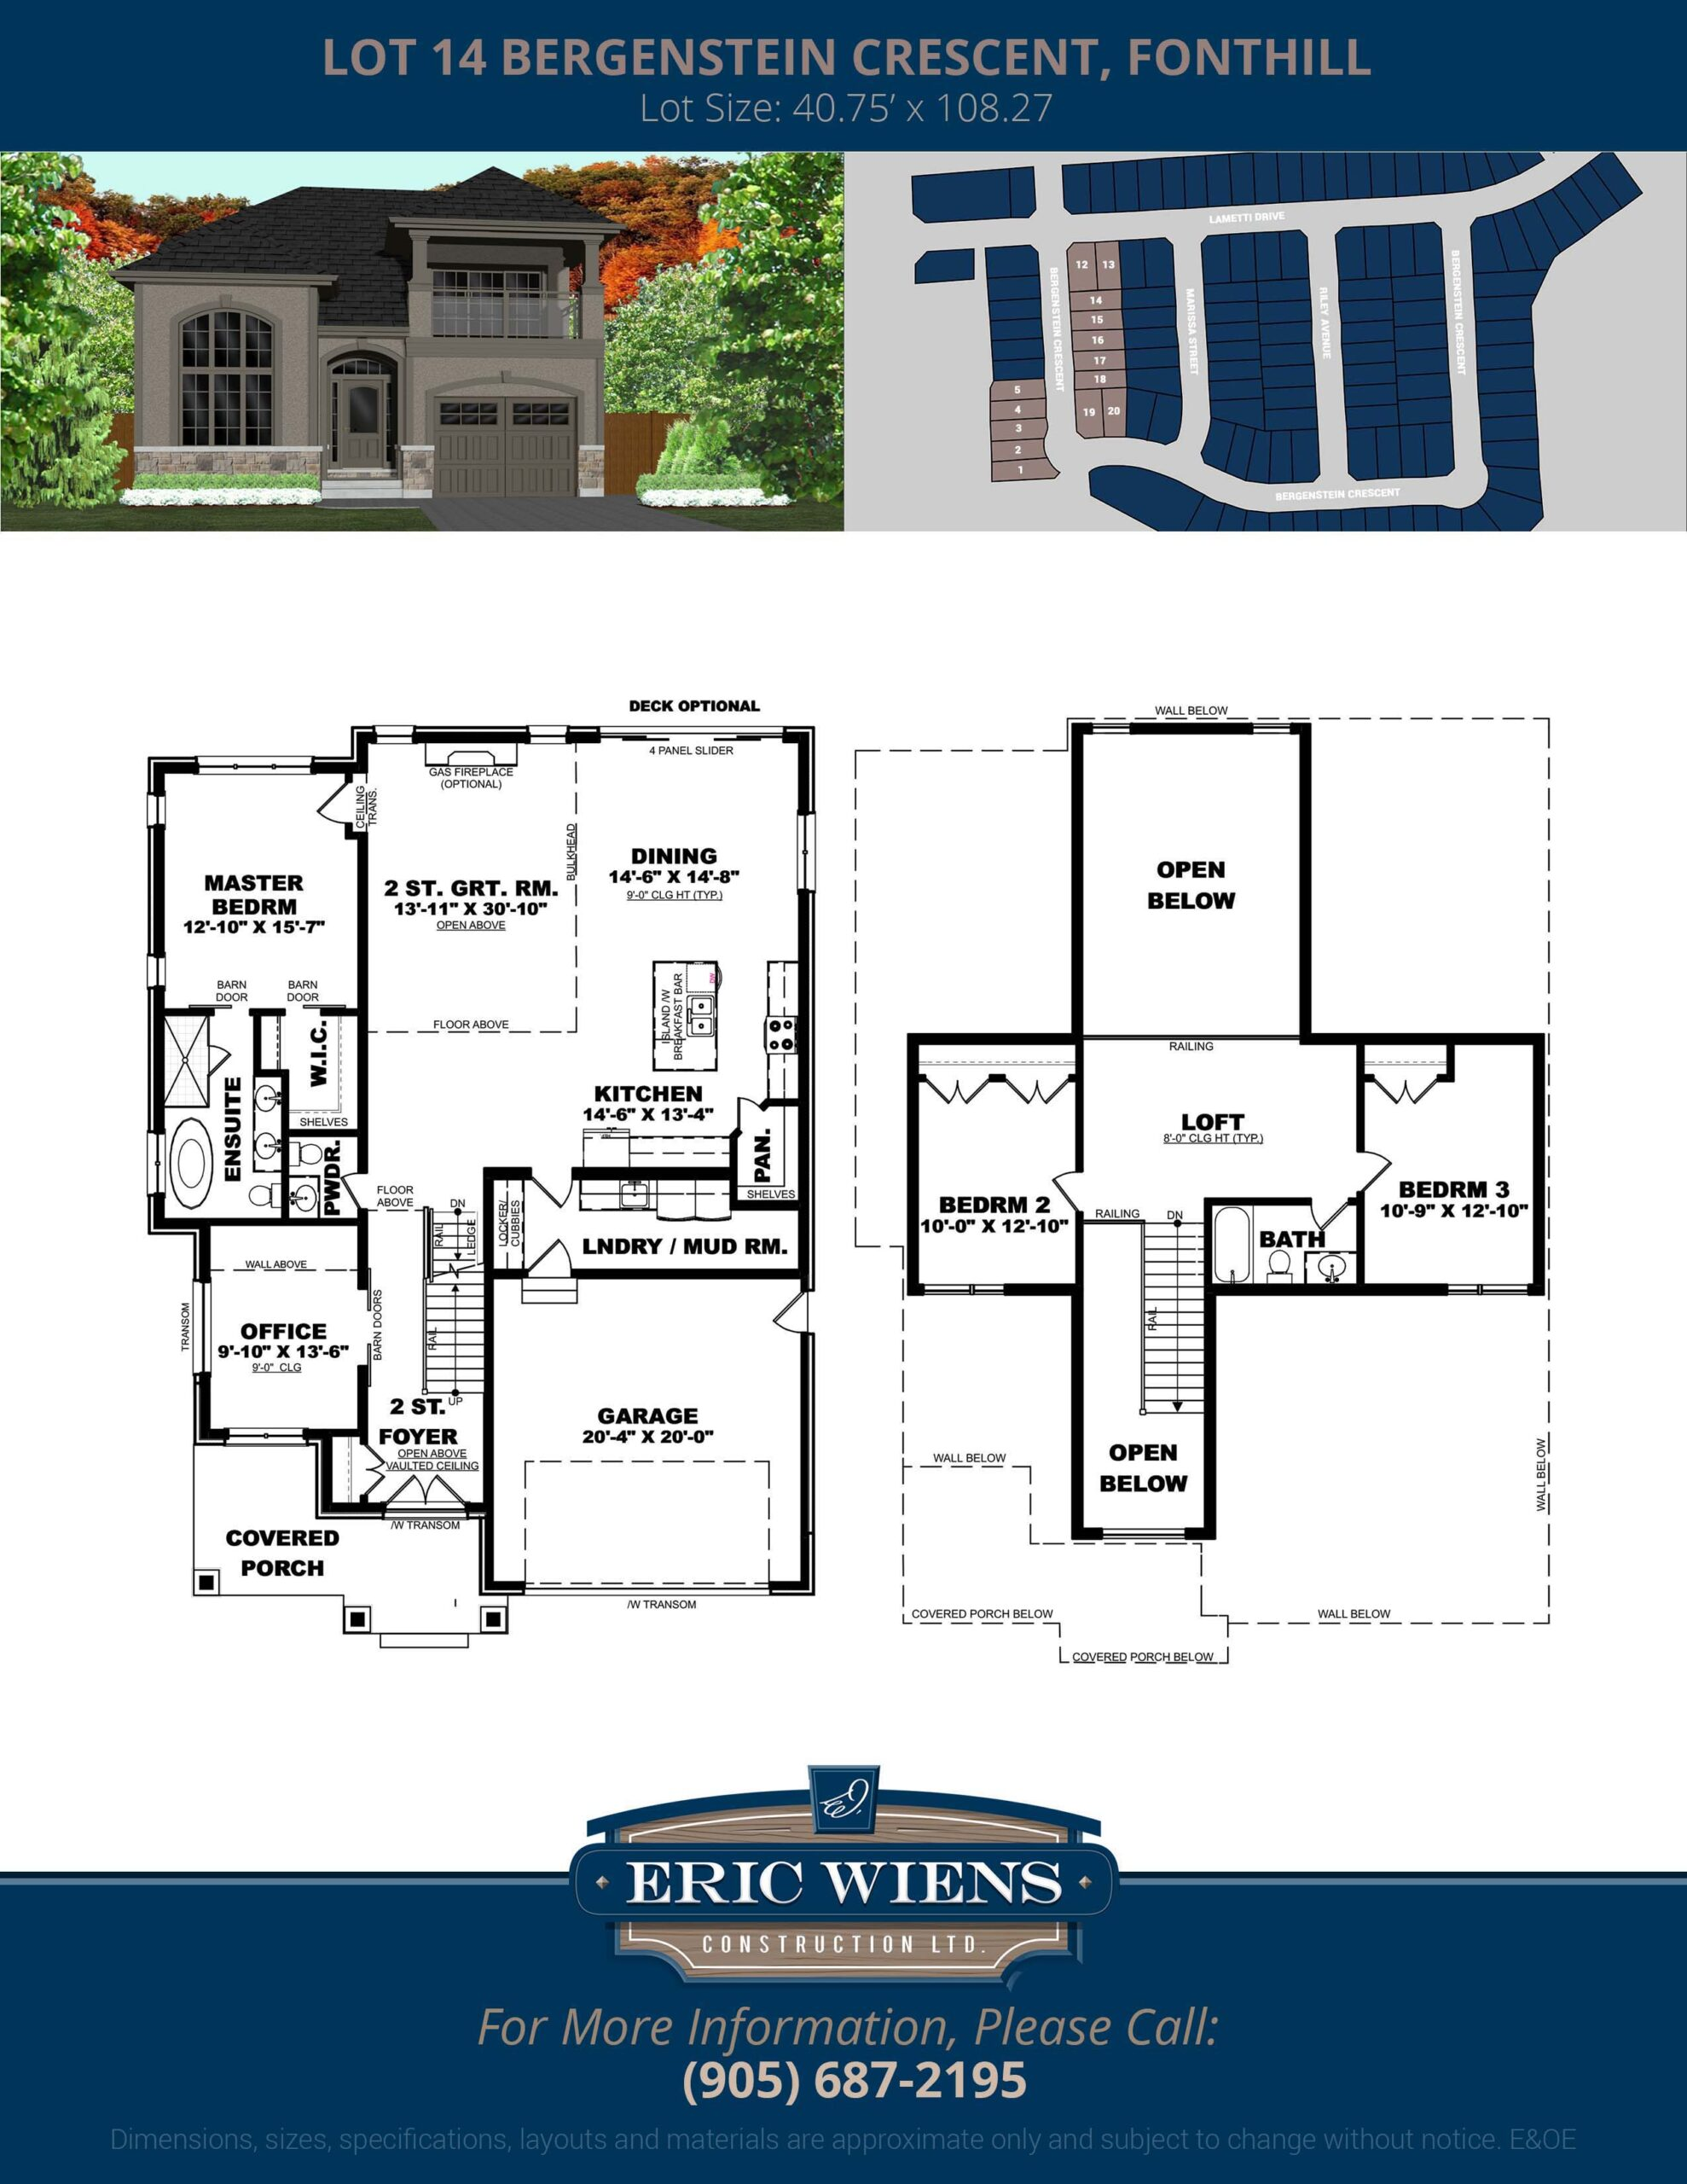 Lot 14 Bergenstein Crescent Floor Plan